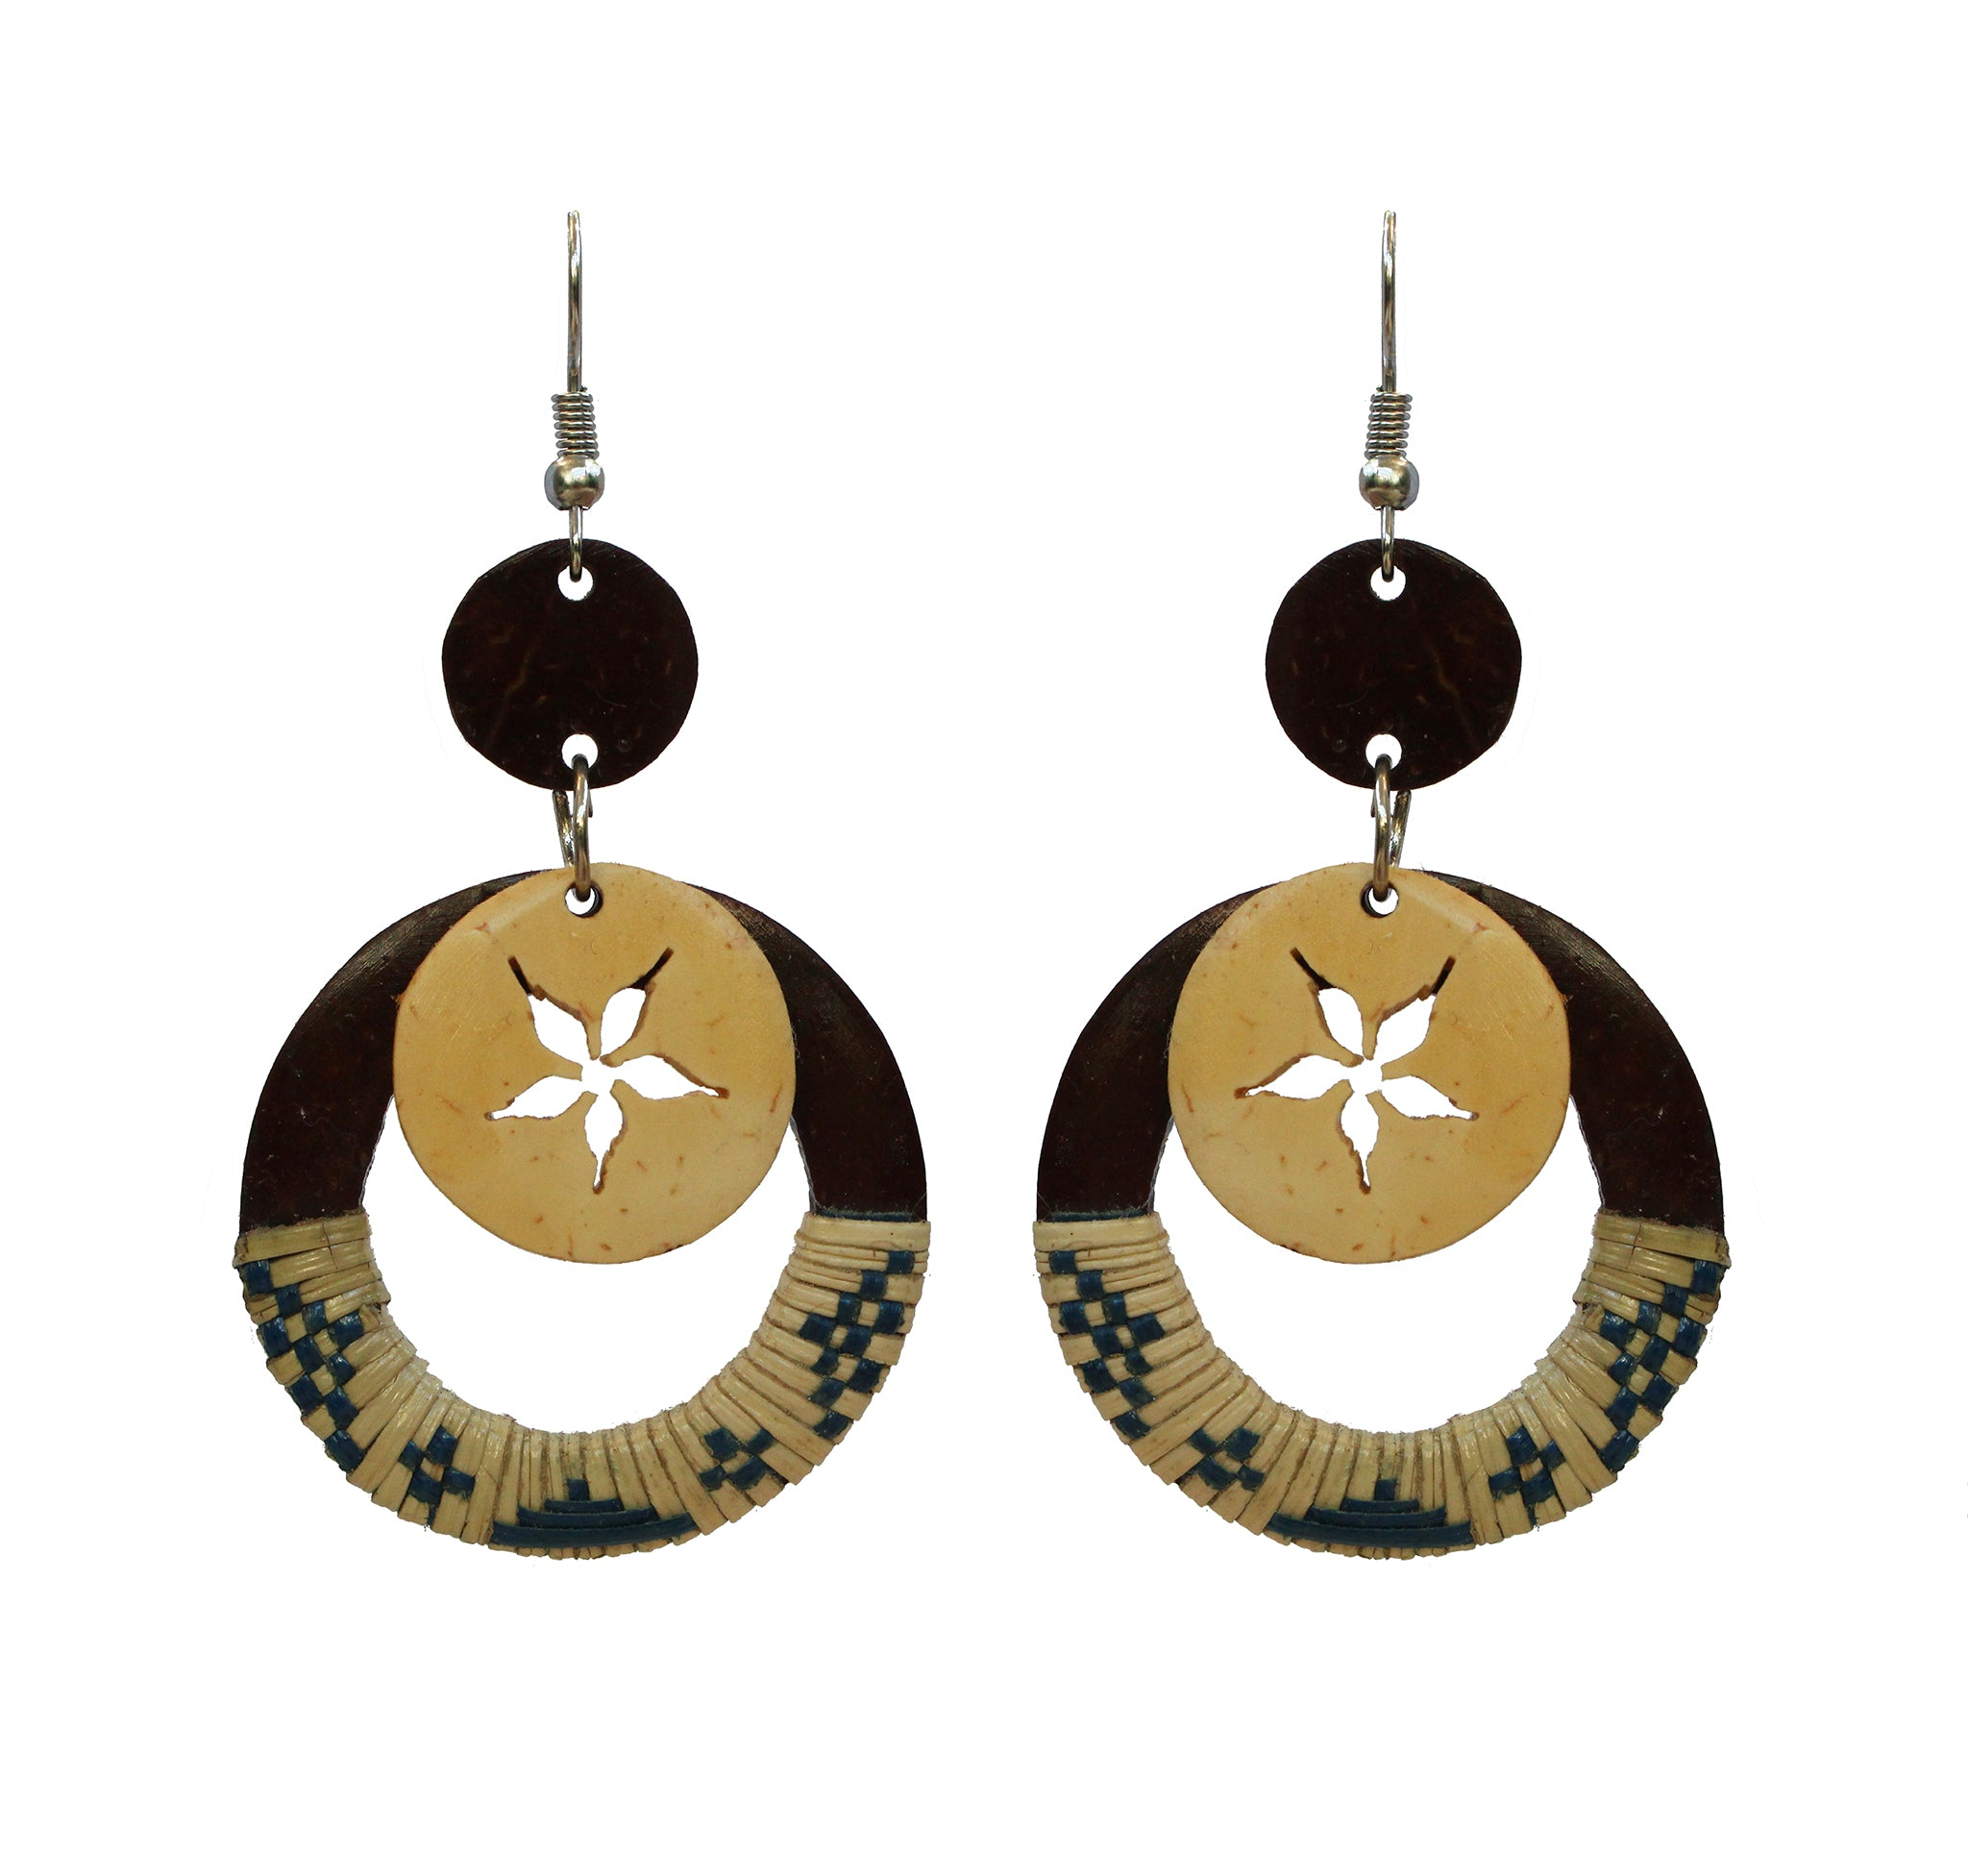 Coconut Earrings - Dangle Woven Flower